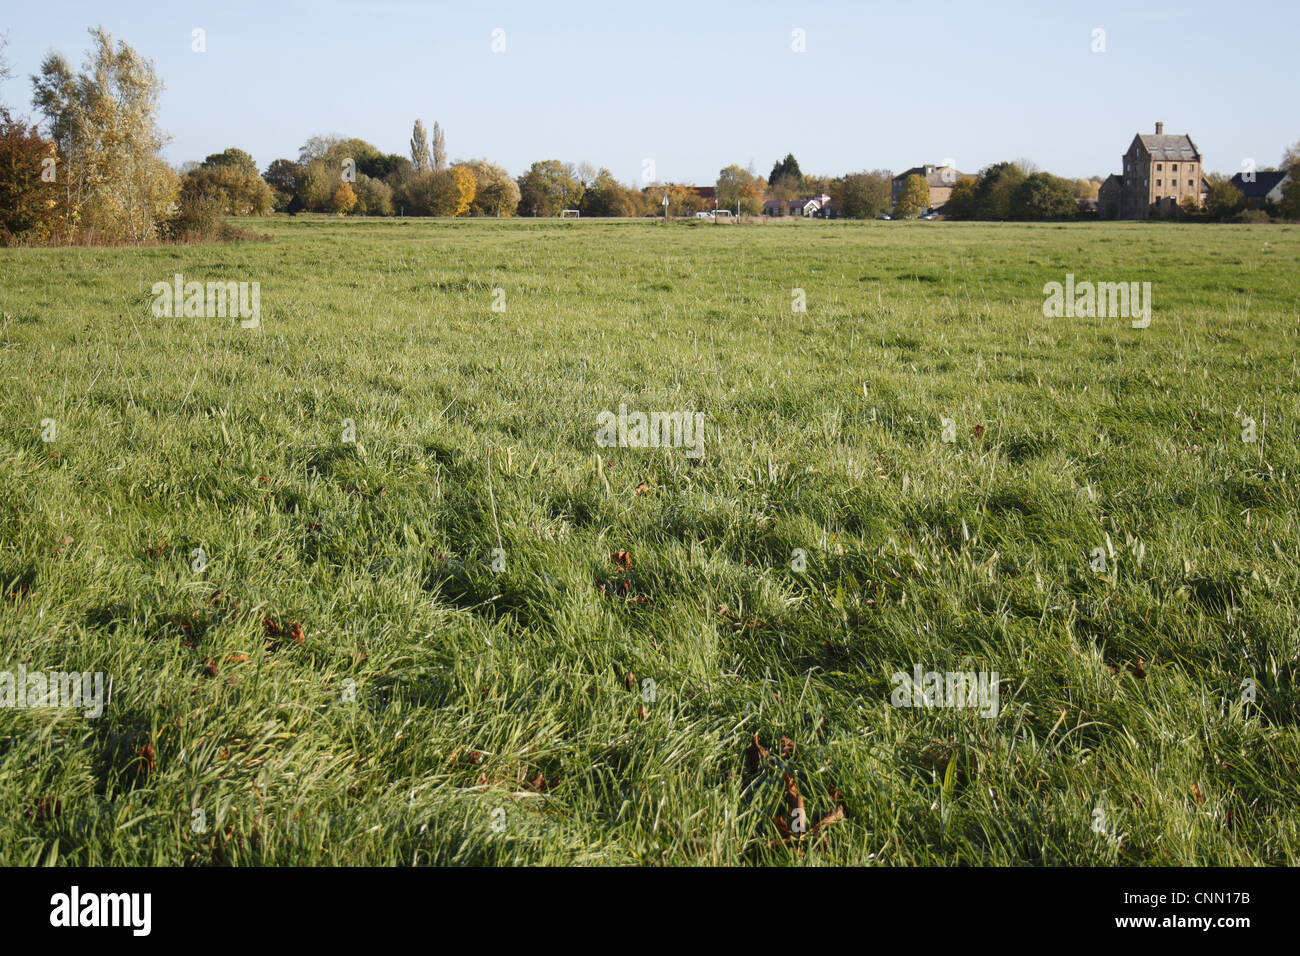 View of commonland reserve, The Carnser, Mellis Common, Mellis, Suffolk, England, october - Stock Image